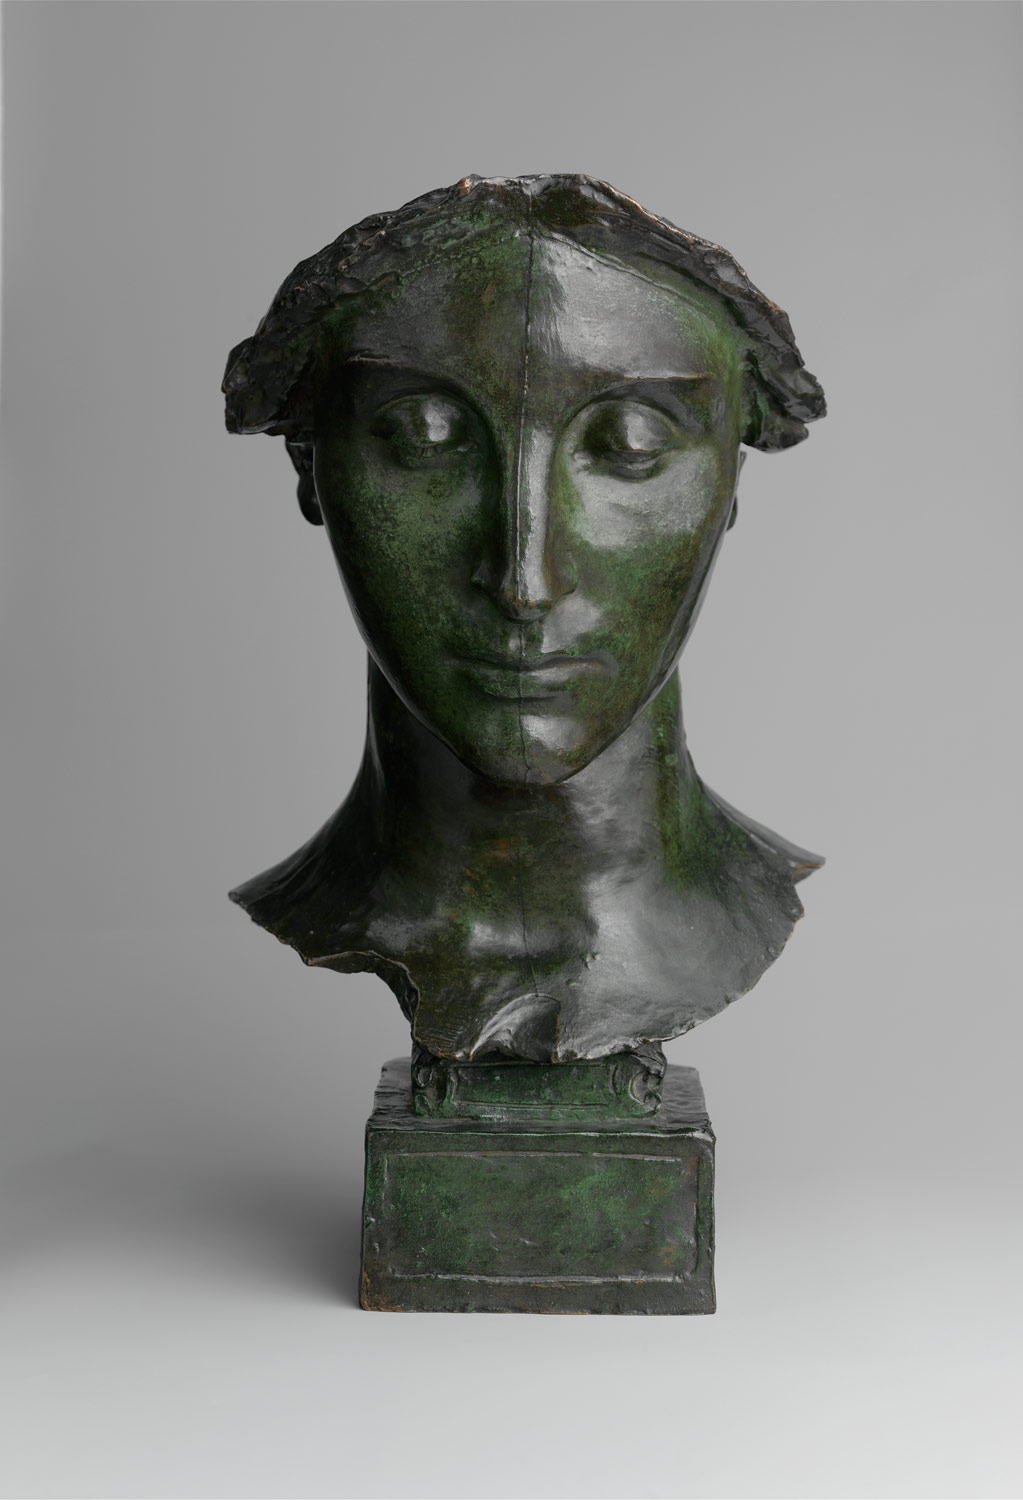 Study for the Head of The Melvin Memorial